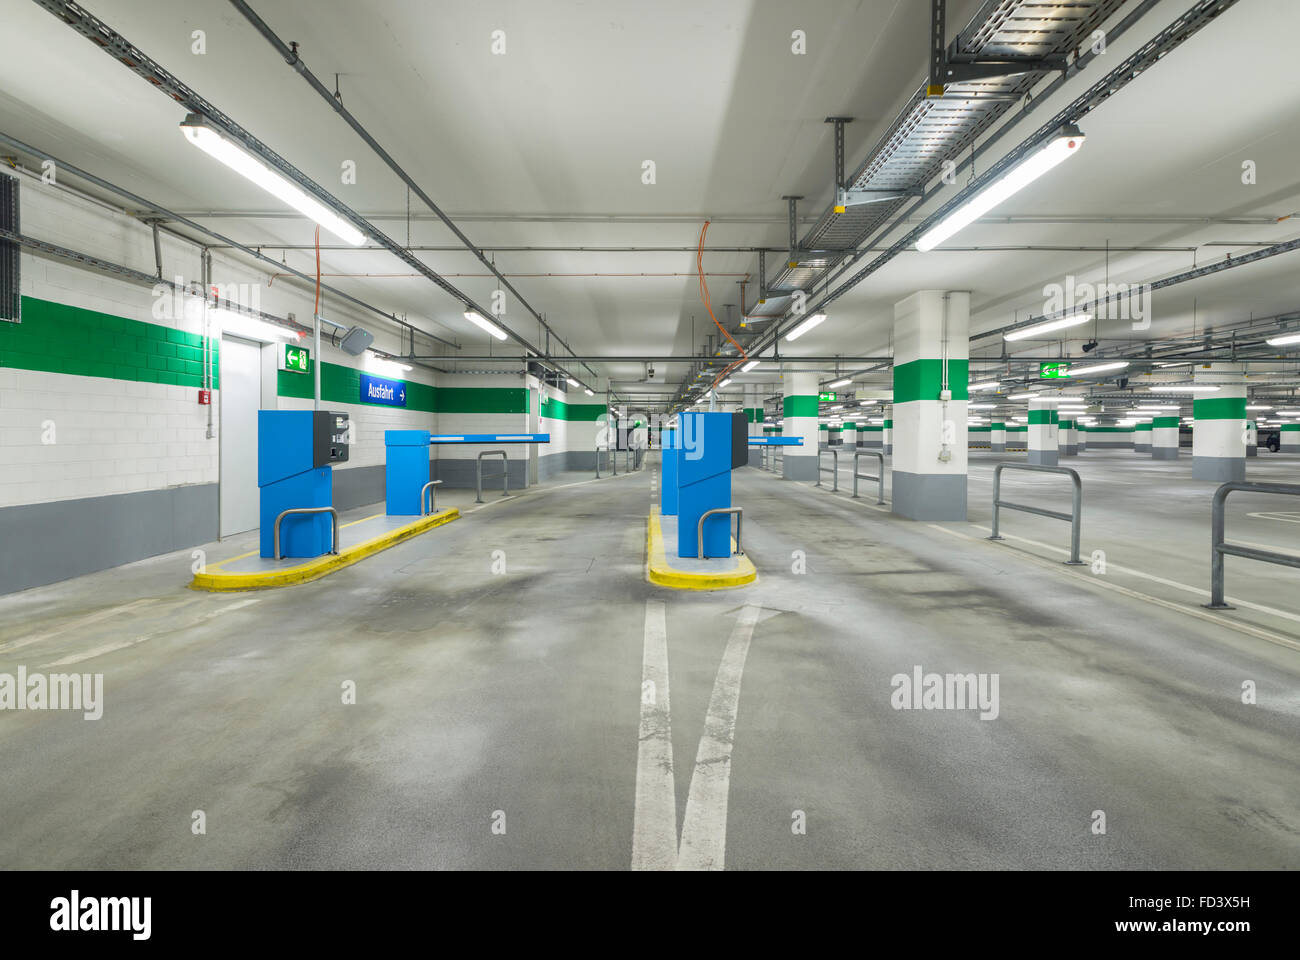 Entrance lane of a parking garage with barrier and ticket machines - Stock Image